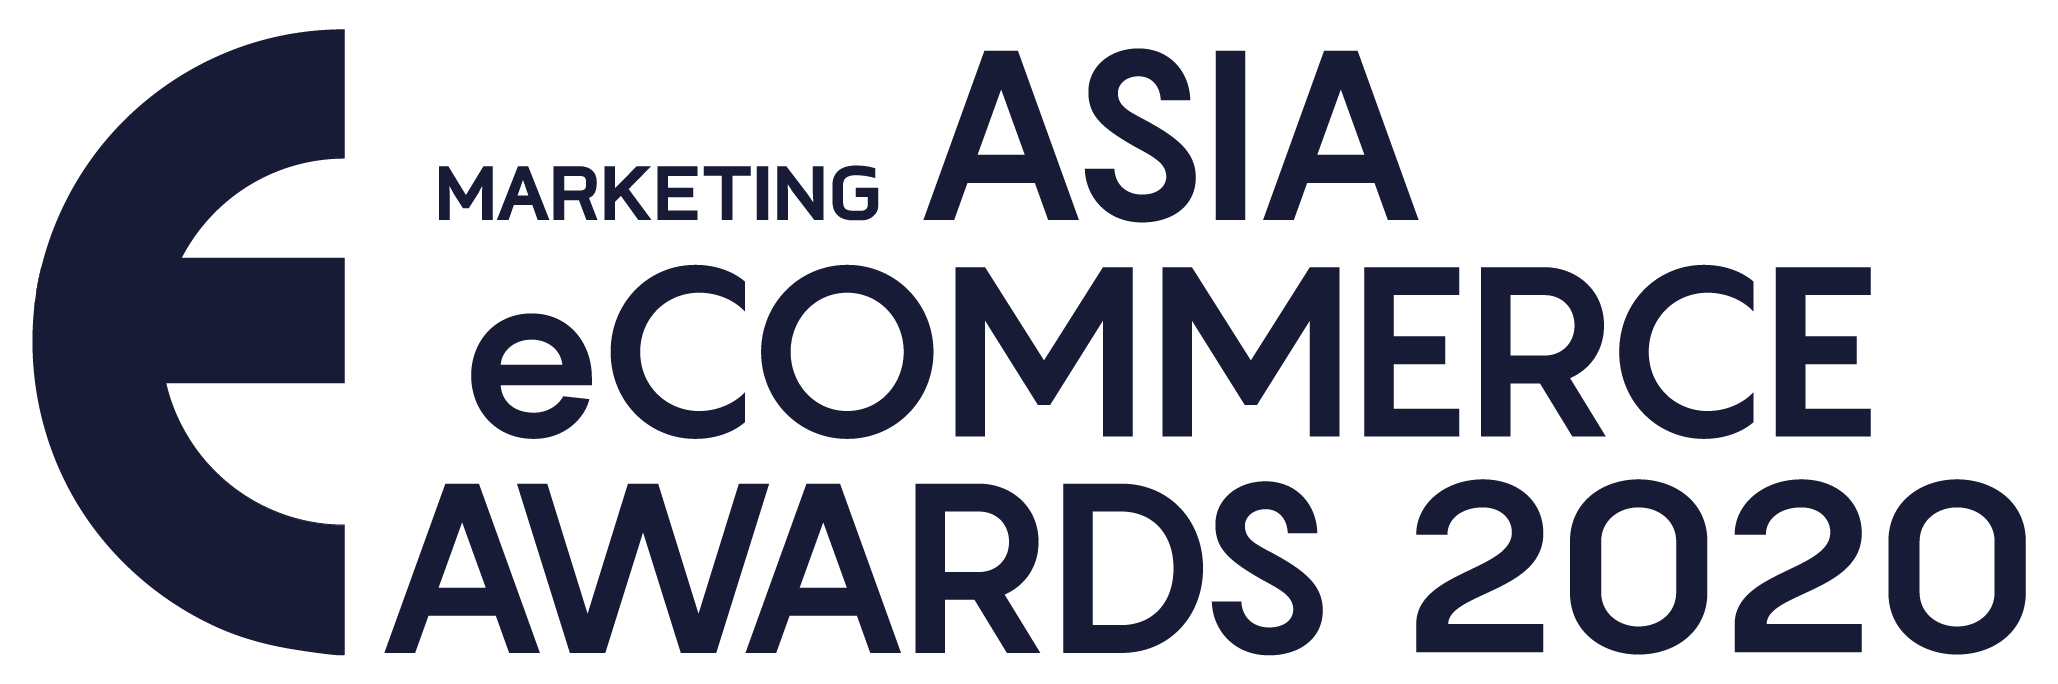 Asia eCommerce Awards 2020 Singapore